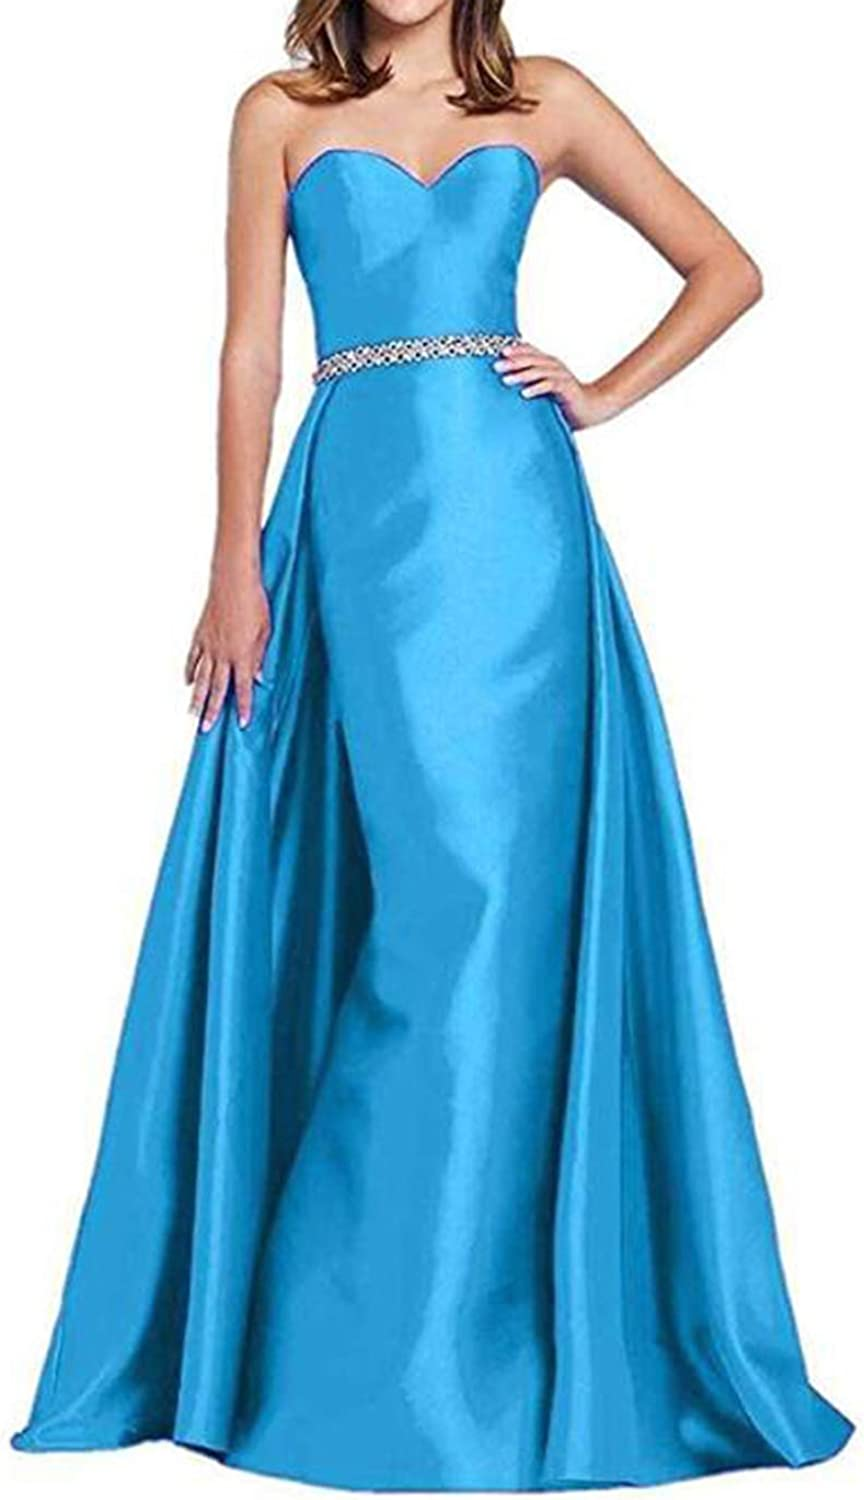 Alilith.Z Sexy Sweetheart Mermaid Prom Dresses 2019 Beaded Belt Satin Evening Dresses Party Gowns for Women with Overskirt